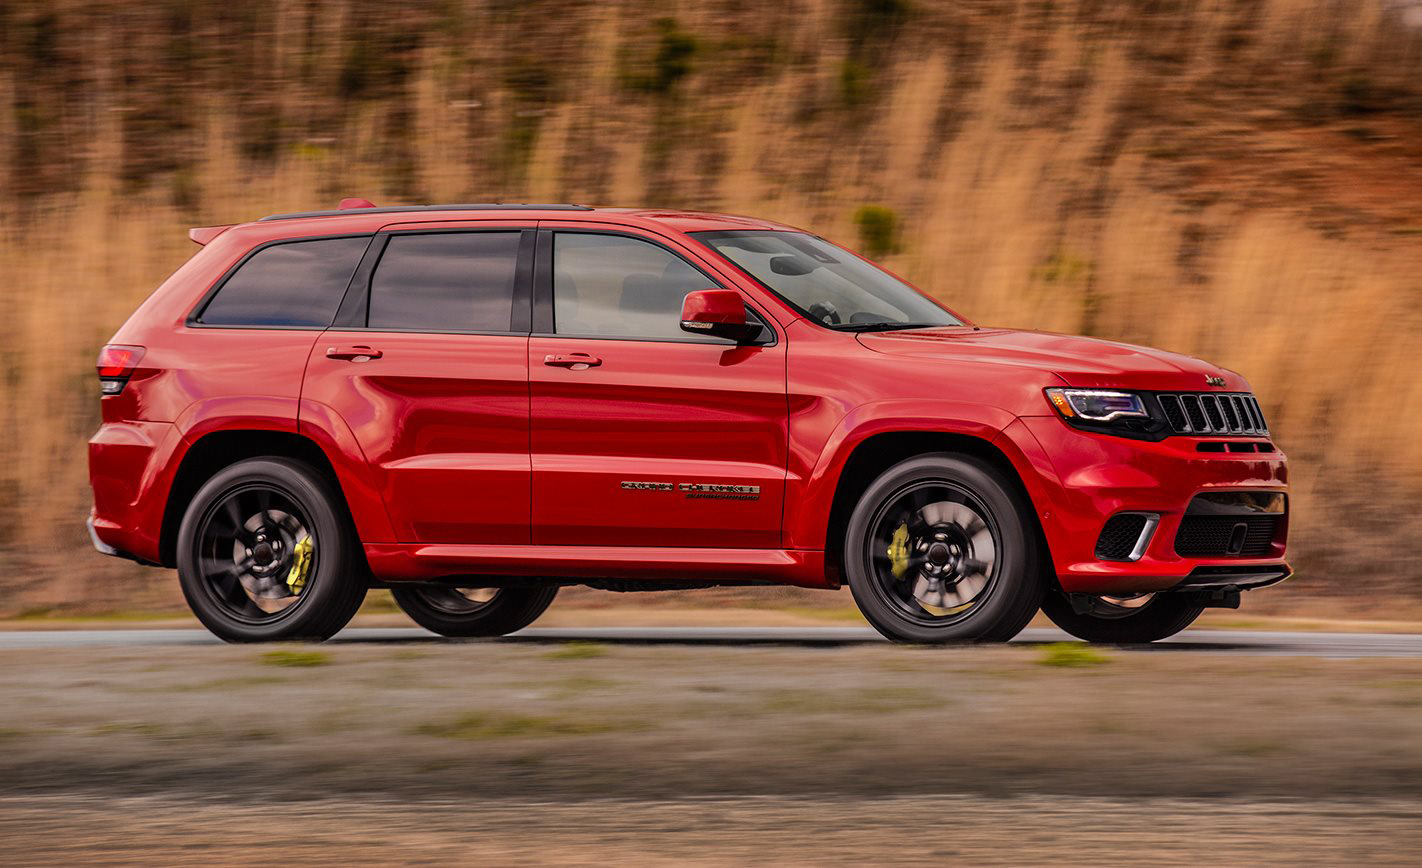 The 2018 Jeep Grand Cherokee Trackhawk Is The Third Most Powerful Car On  Sale In Australia. Boasting A Ridiculous 527kW And Slightly Breathtaking  874Nm Of ...